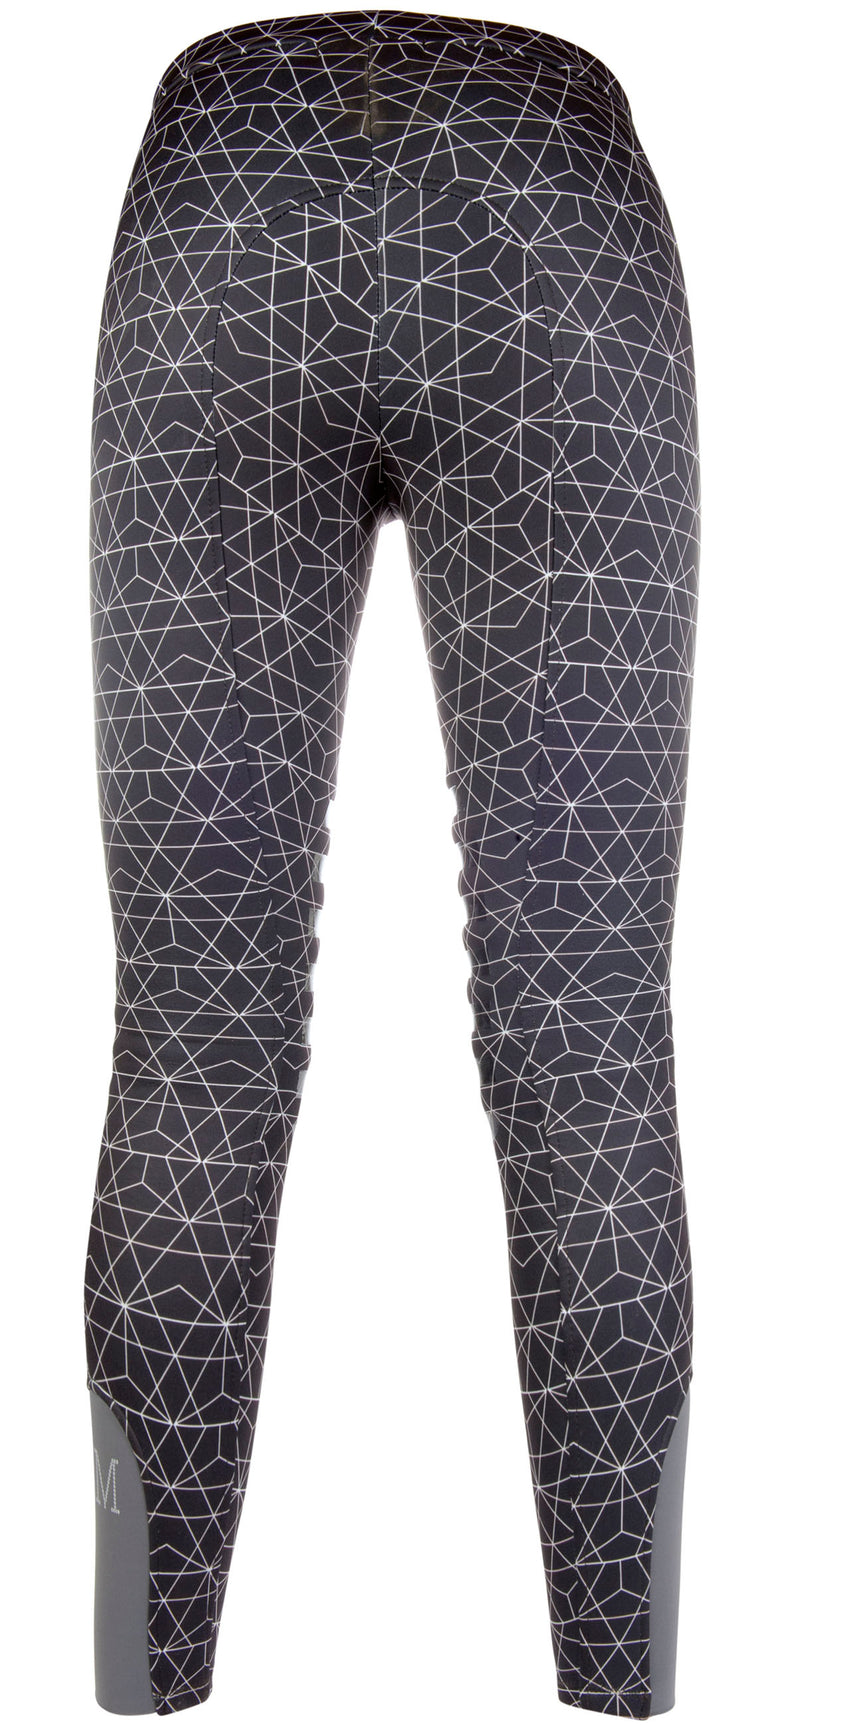 Winter Riding Leggings in fun pattern